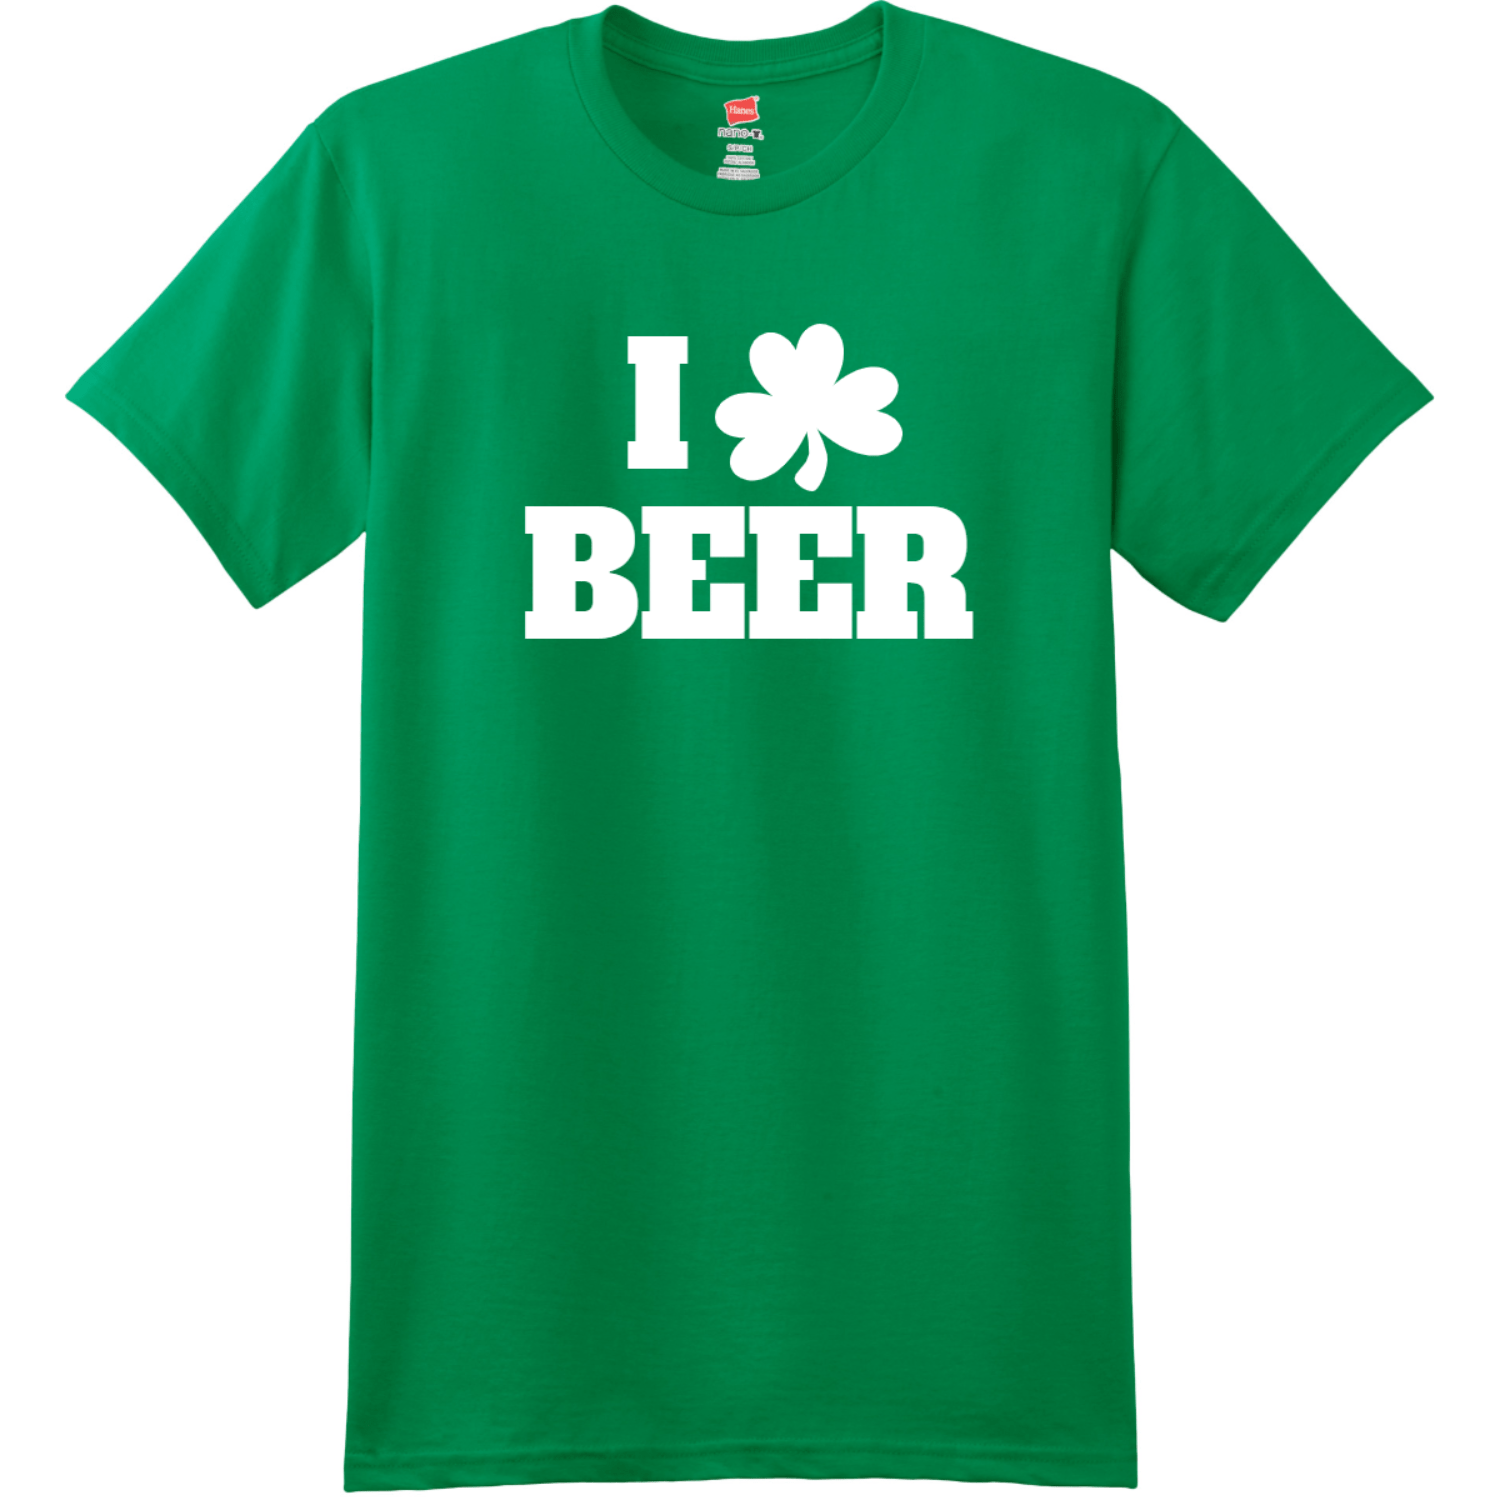 I Love Beer T-Shirt Kelly Green Hanes Nano 4980 Ringspun Cotton T Shirt